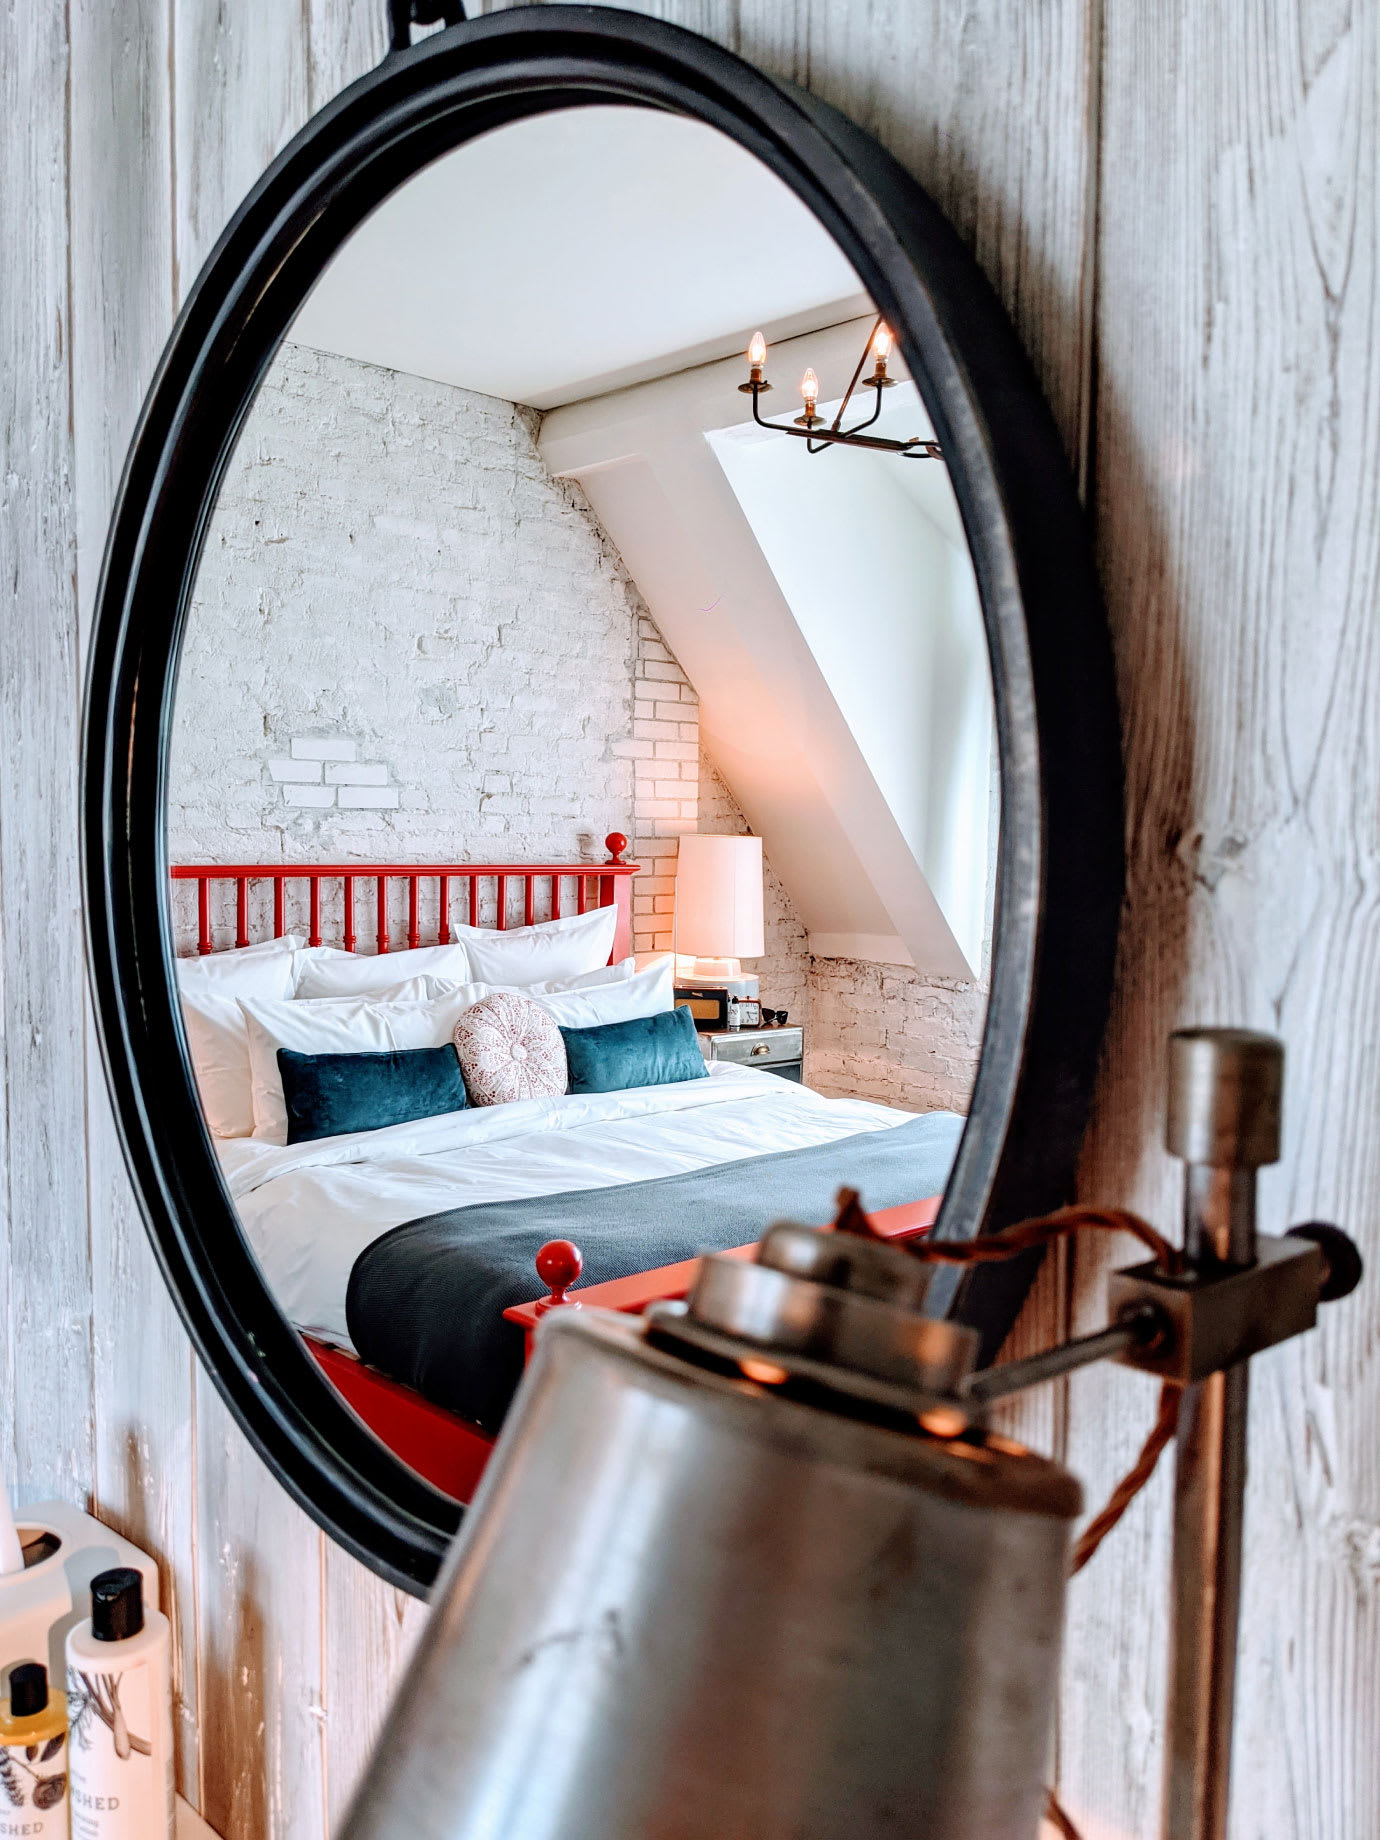 A bed reflected in a mirror.